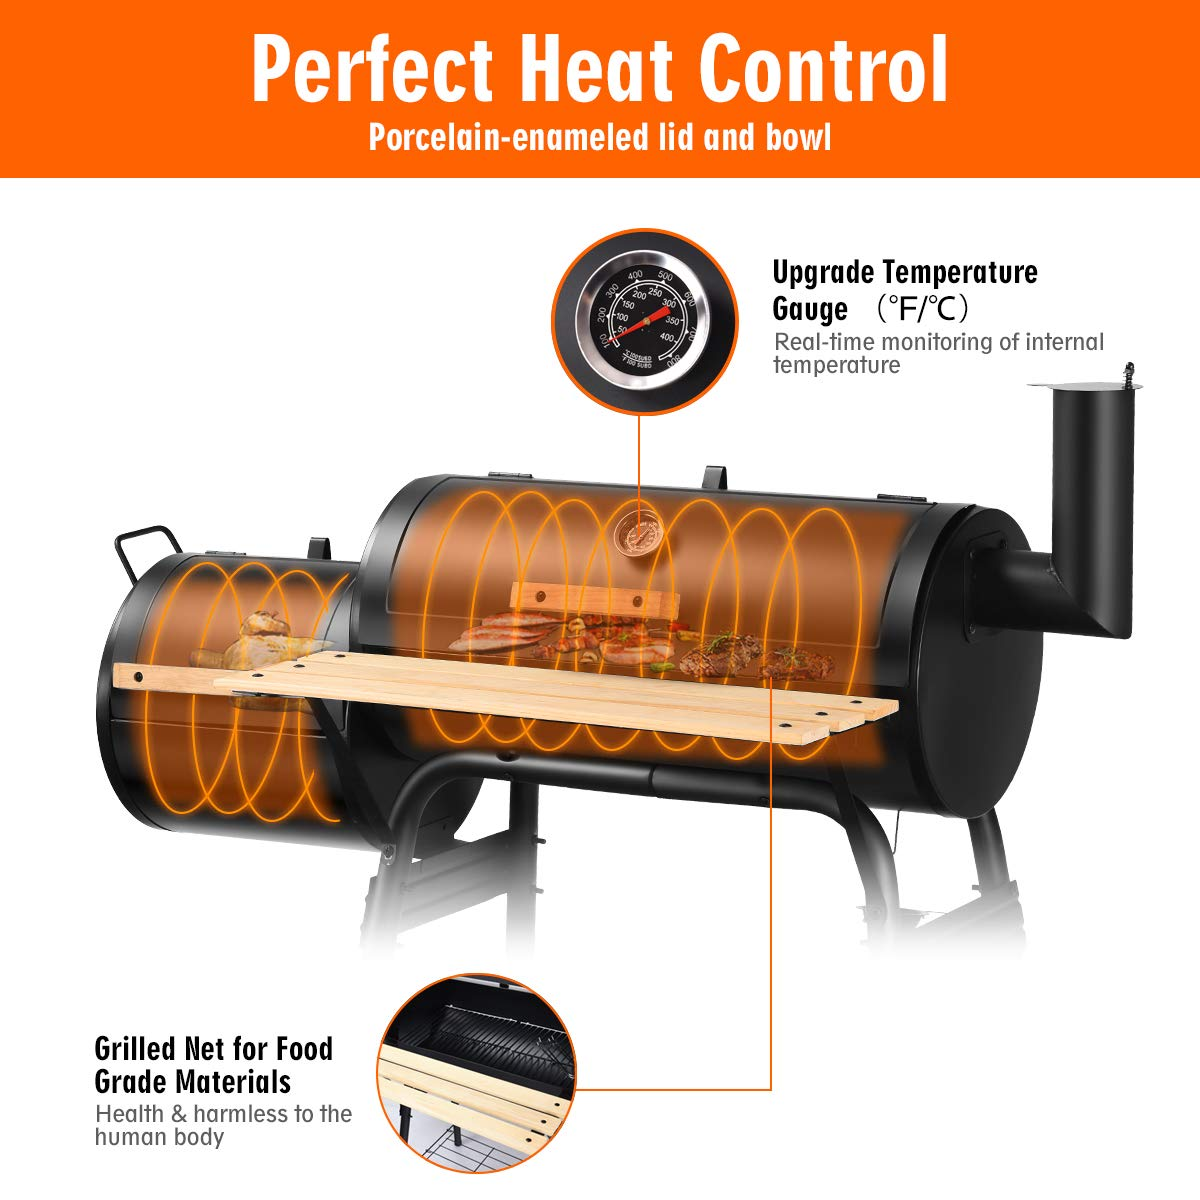 Giantex BBQ Grill Charcoal Barbecue Grill Outdoor Pit Patio Backyard Home Meat Cooker Smoker with Offset Smoker by Giantex (Image #6)